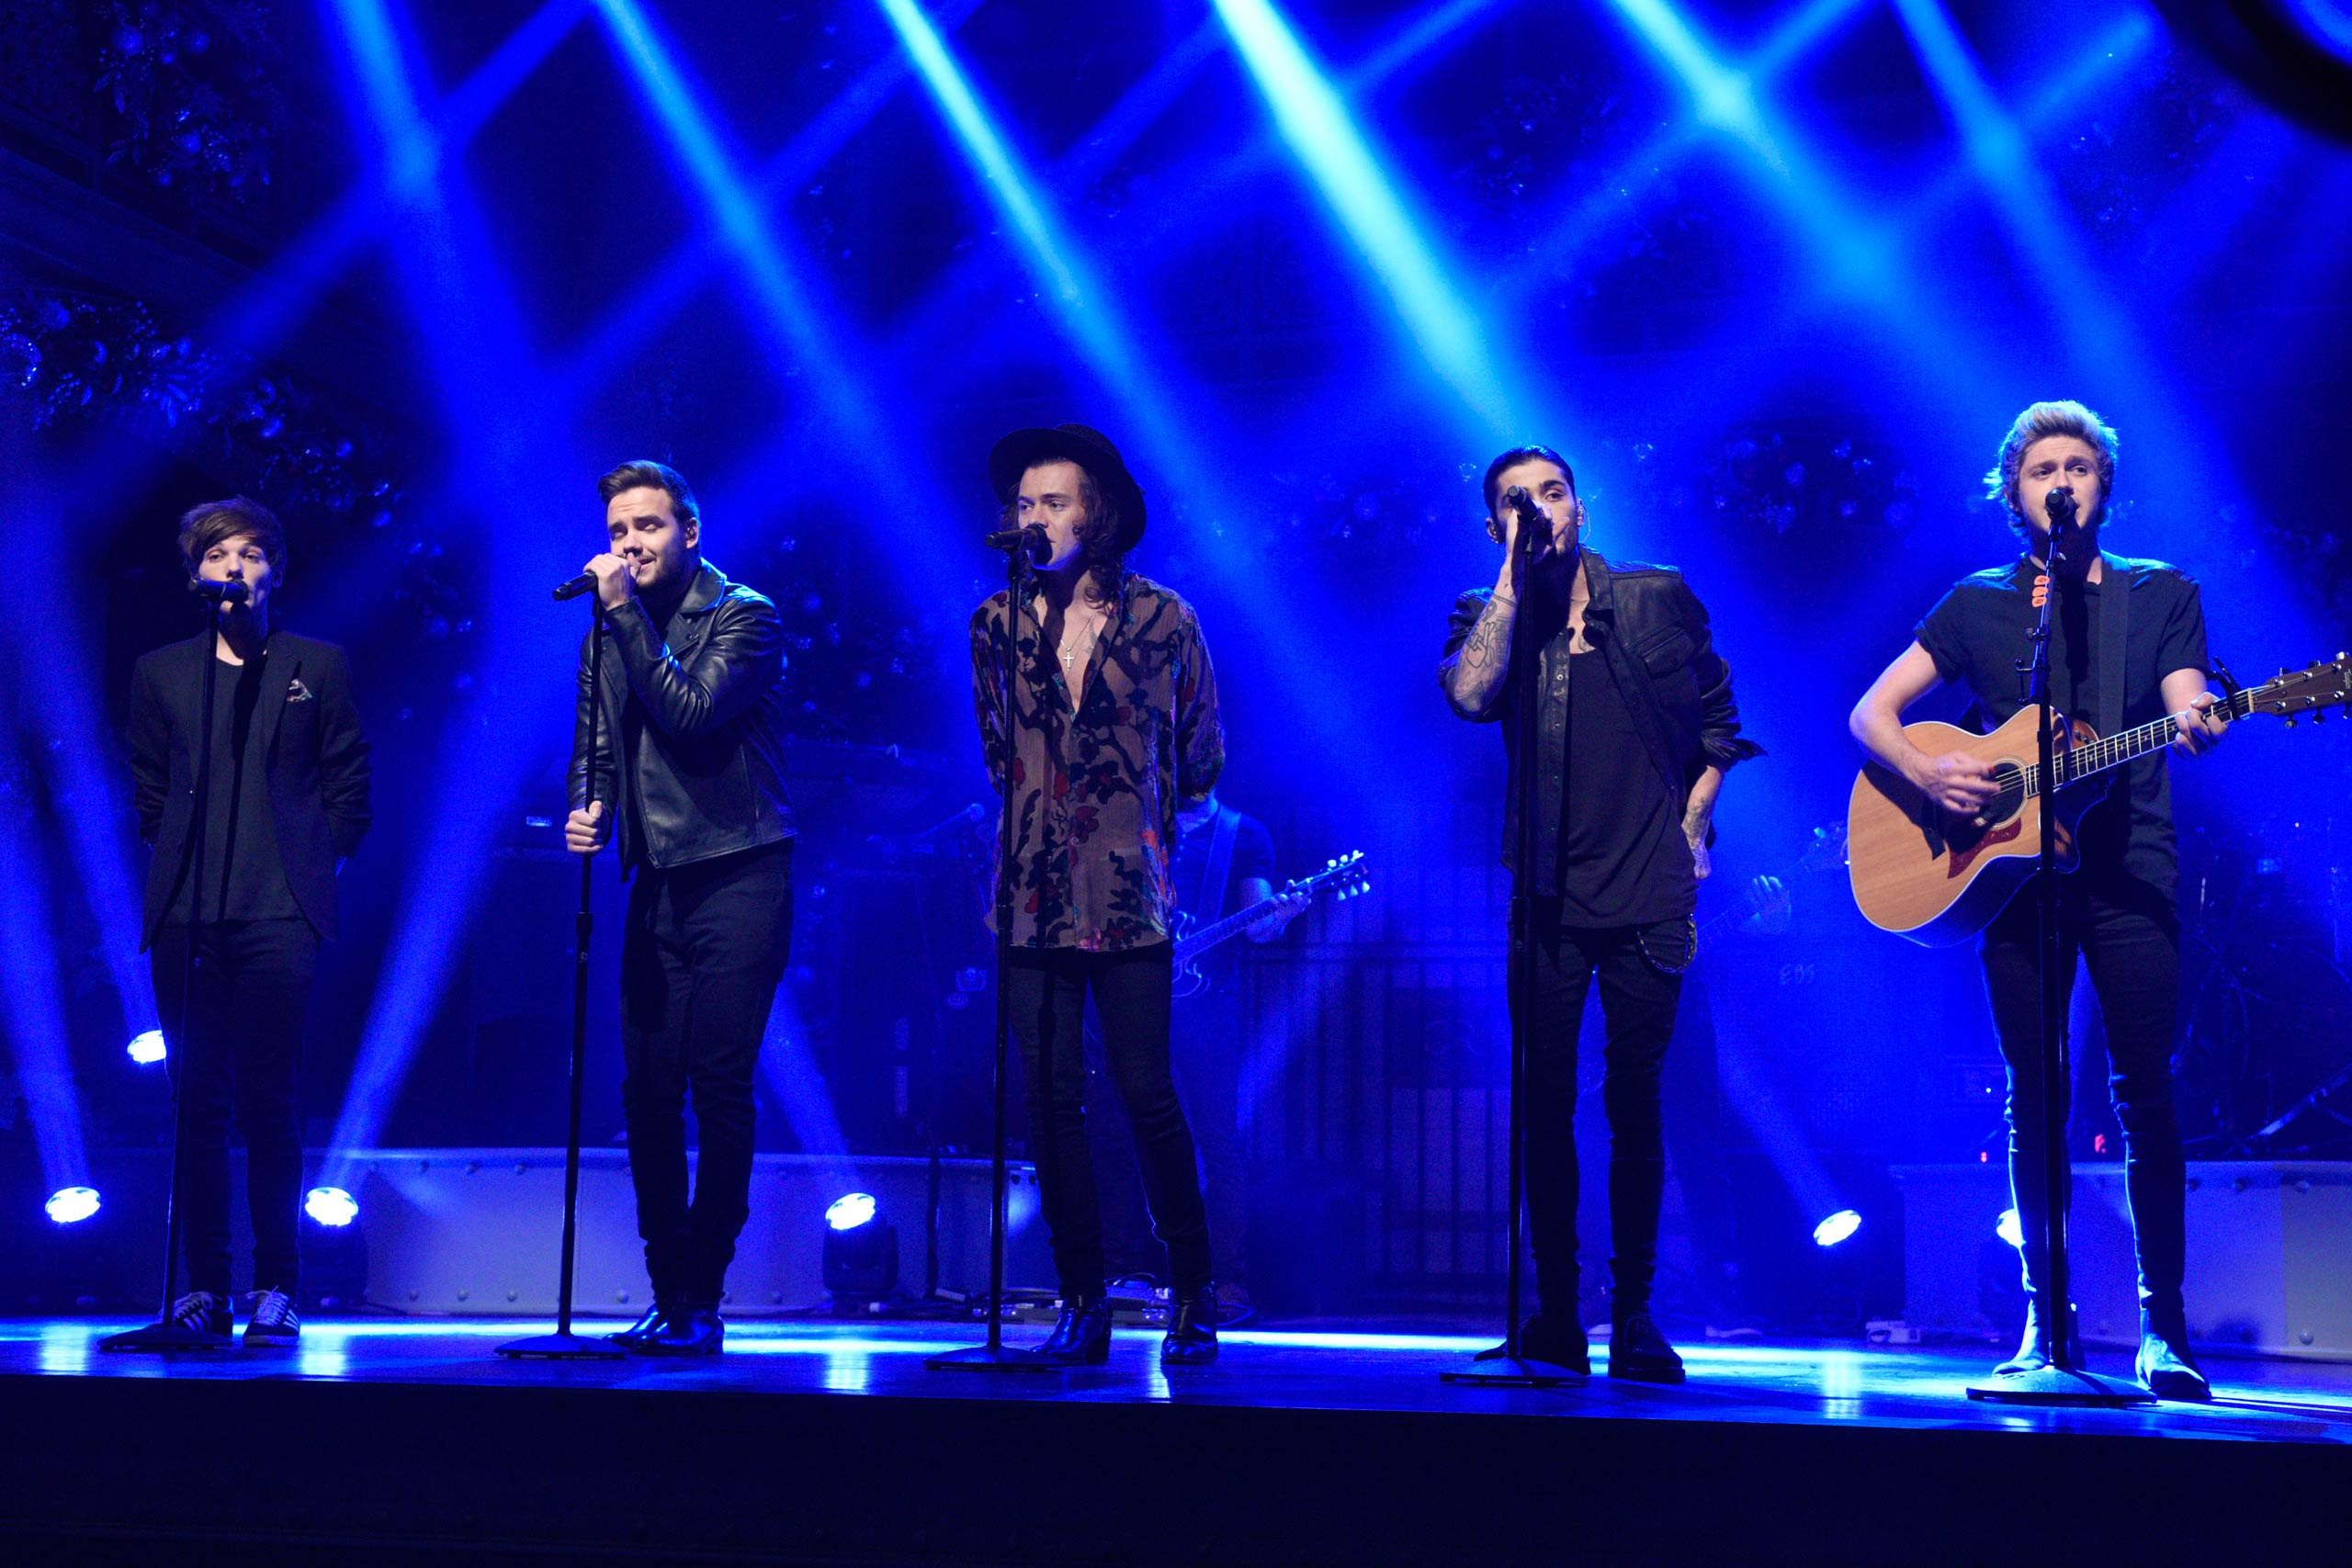 Louis Tomlinson, Liam Payne, Harry Styles, Zayn Malik and Niall Horan of One Direction perform on <i>Saturday Night Live</i> on Dec. 18, 2014.